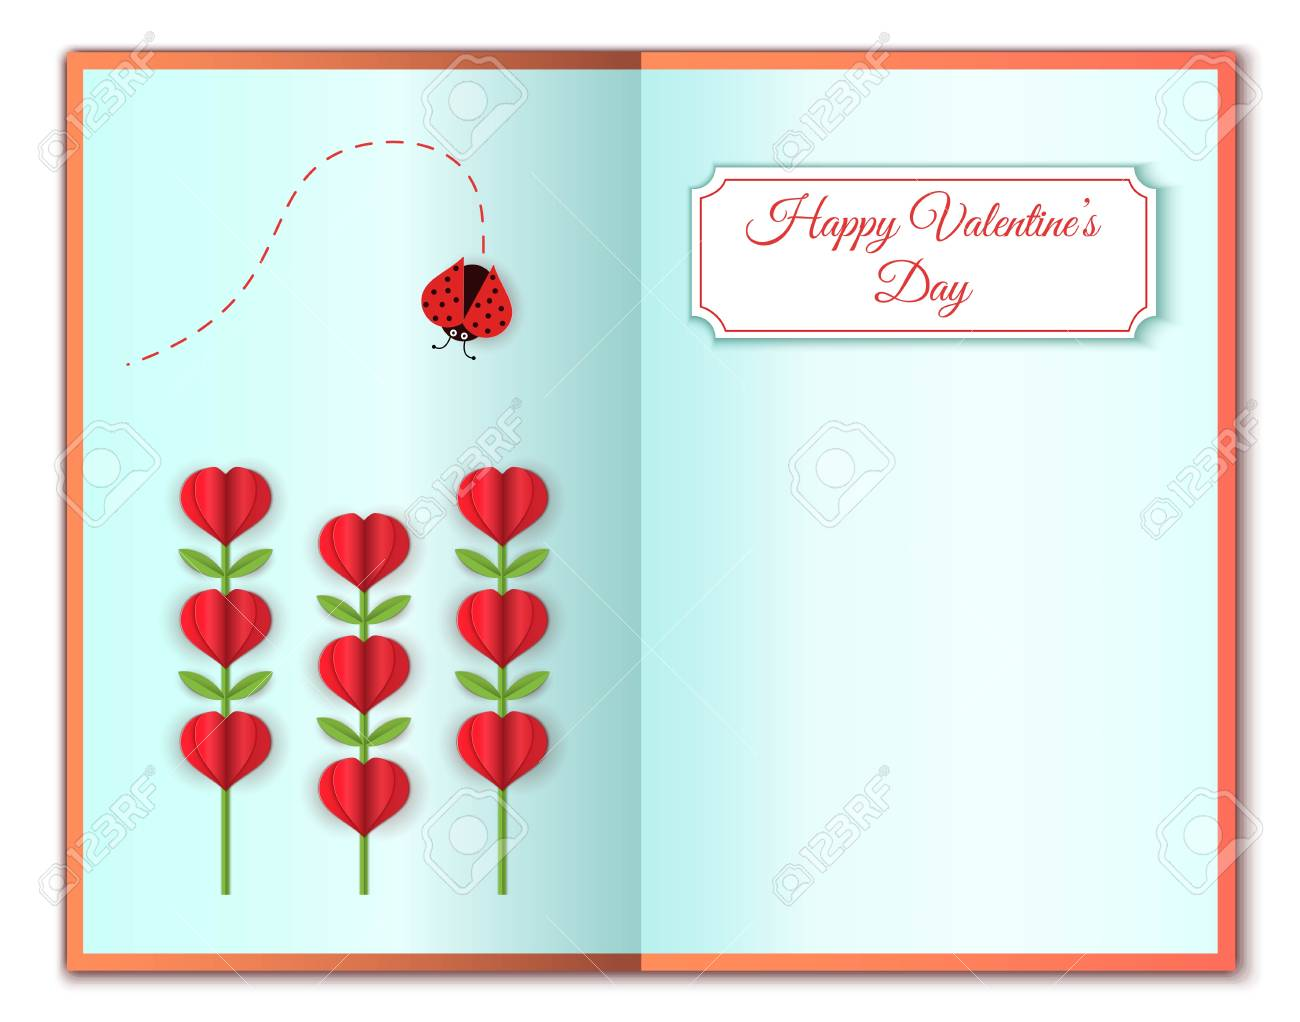 Happy Valentines Greeting Card Of Love And Valentines Day Heart